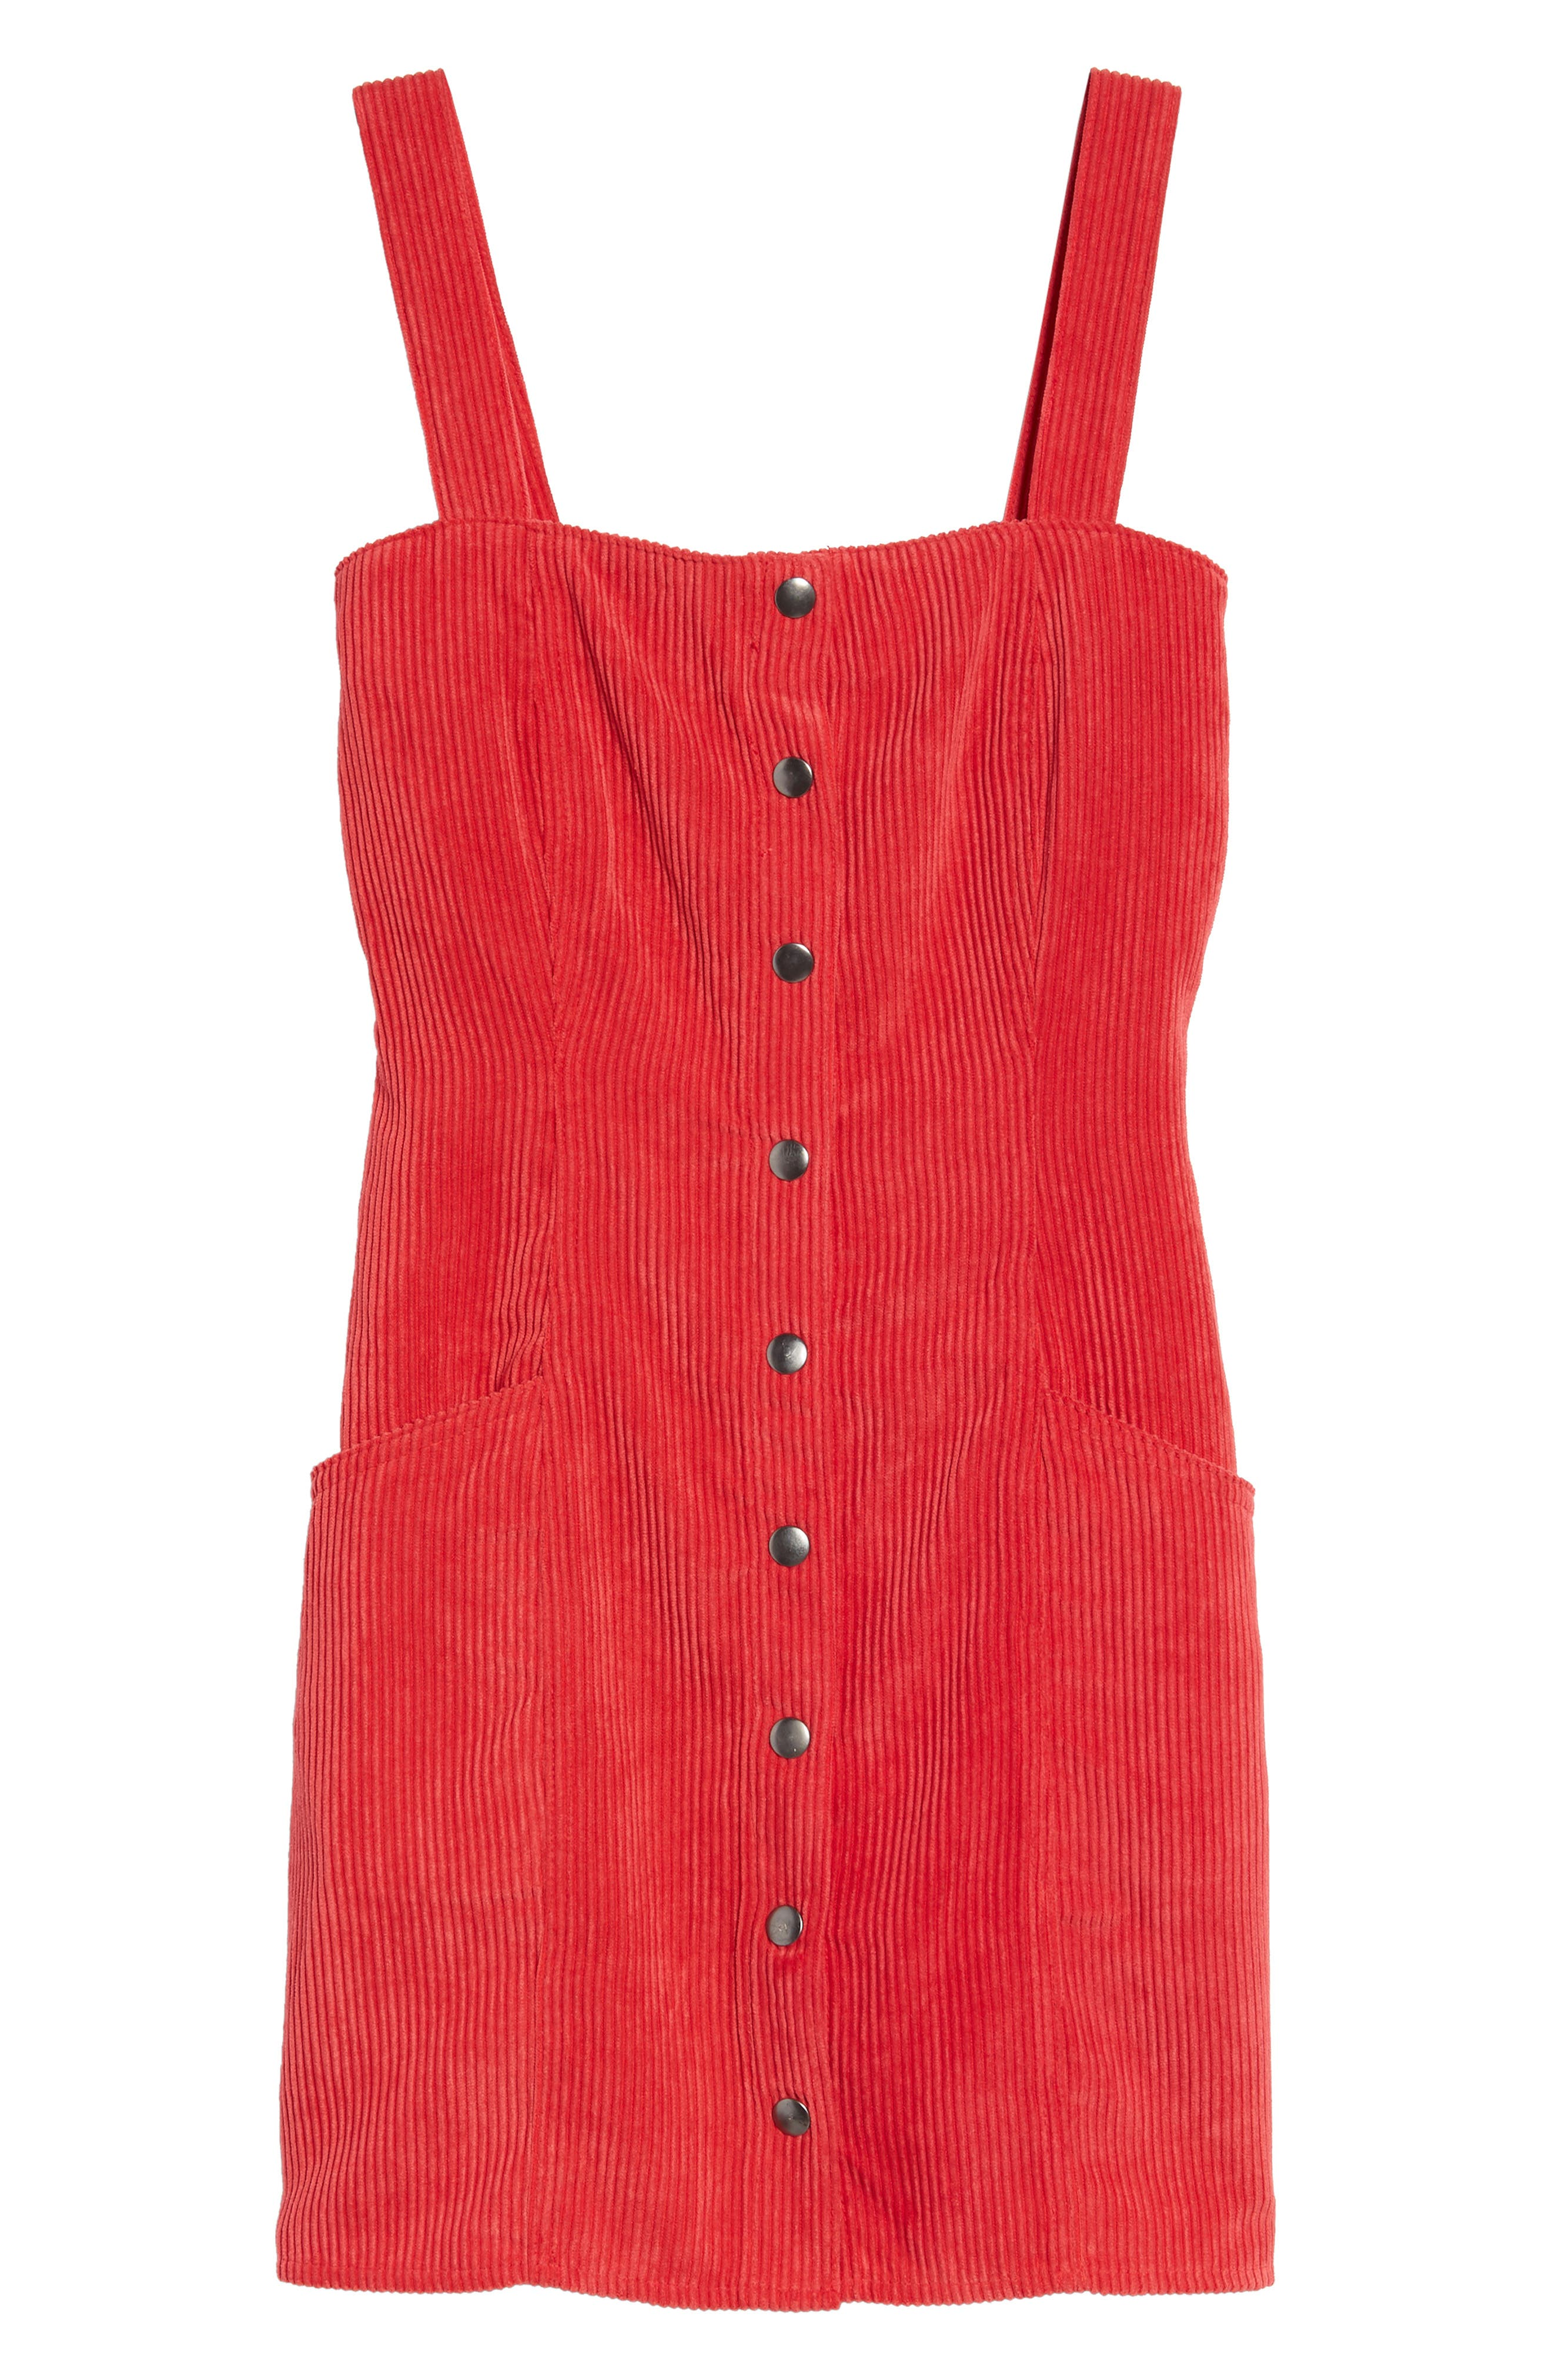 Button Front Corduroy Dress,                             Alternate thumbnail 6, color,                             Red